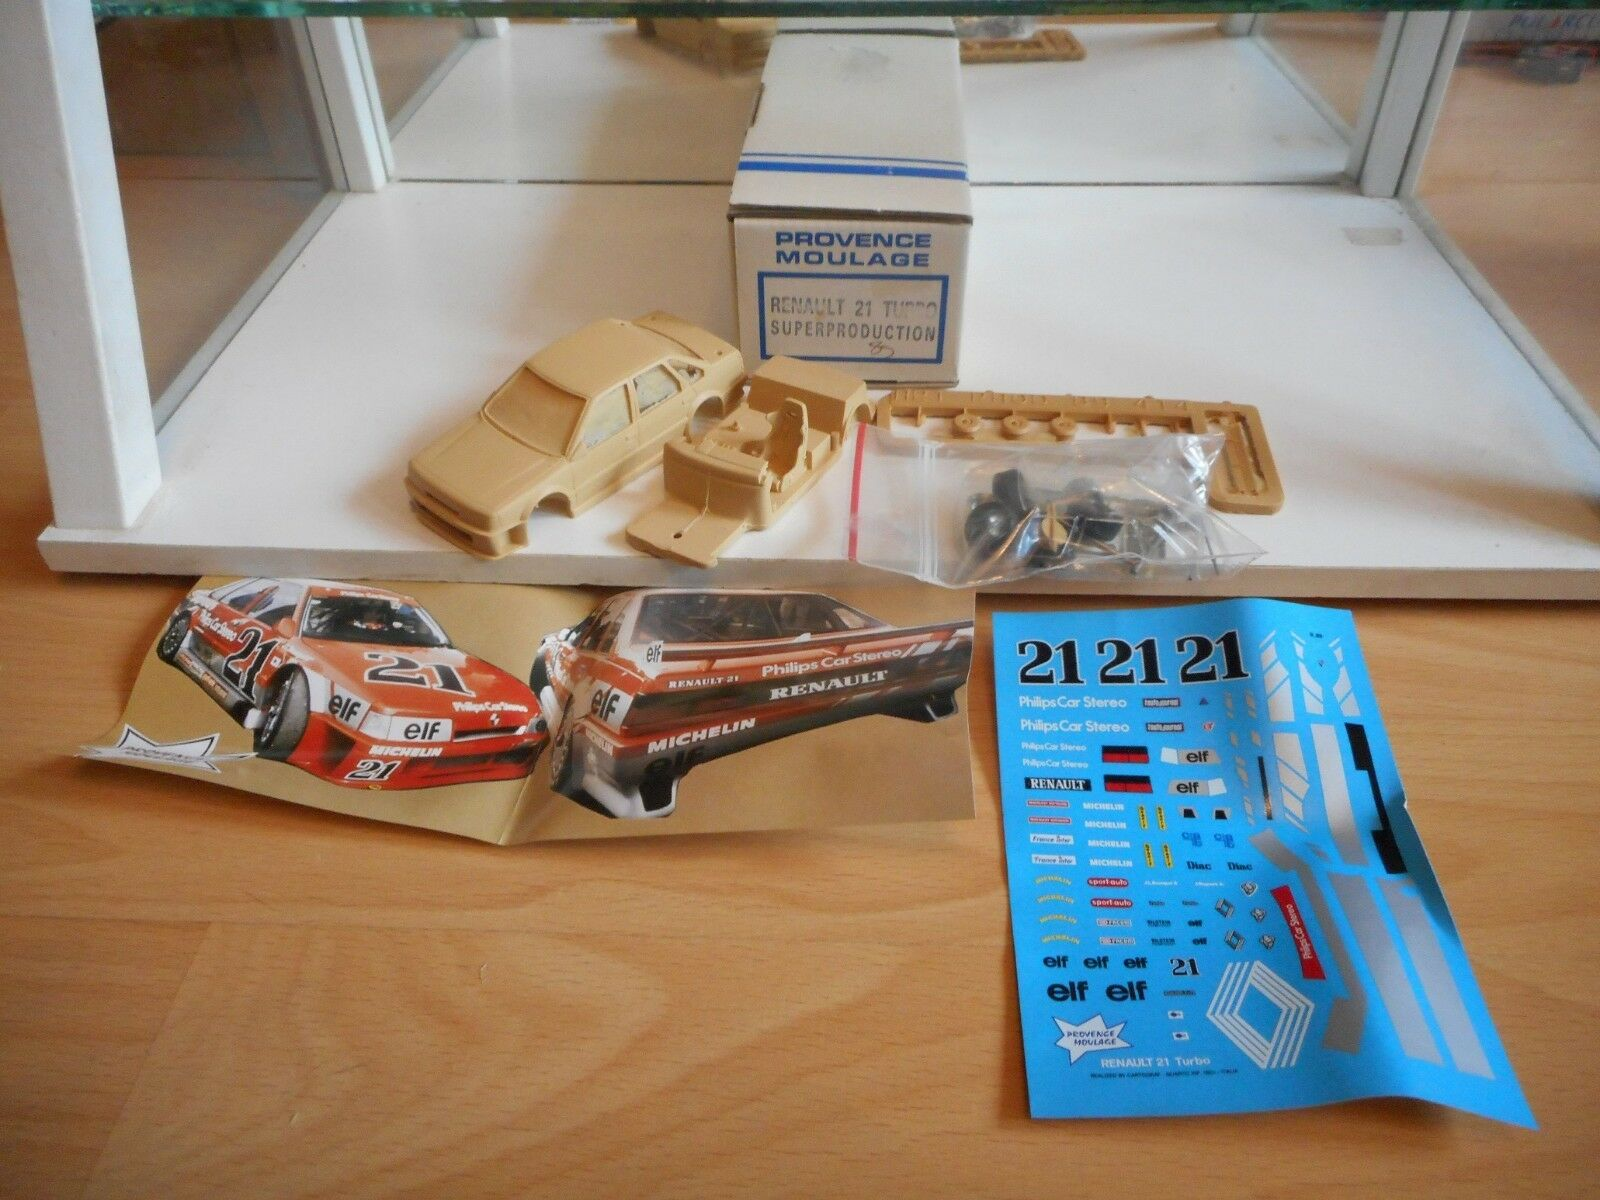 Model Resin Kit Provence Moulage Renault 21 Turbo Super Production - 1 43 in Box